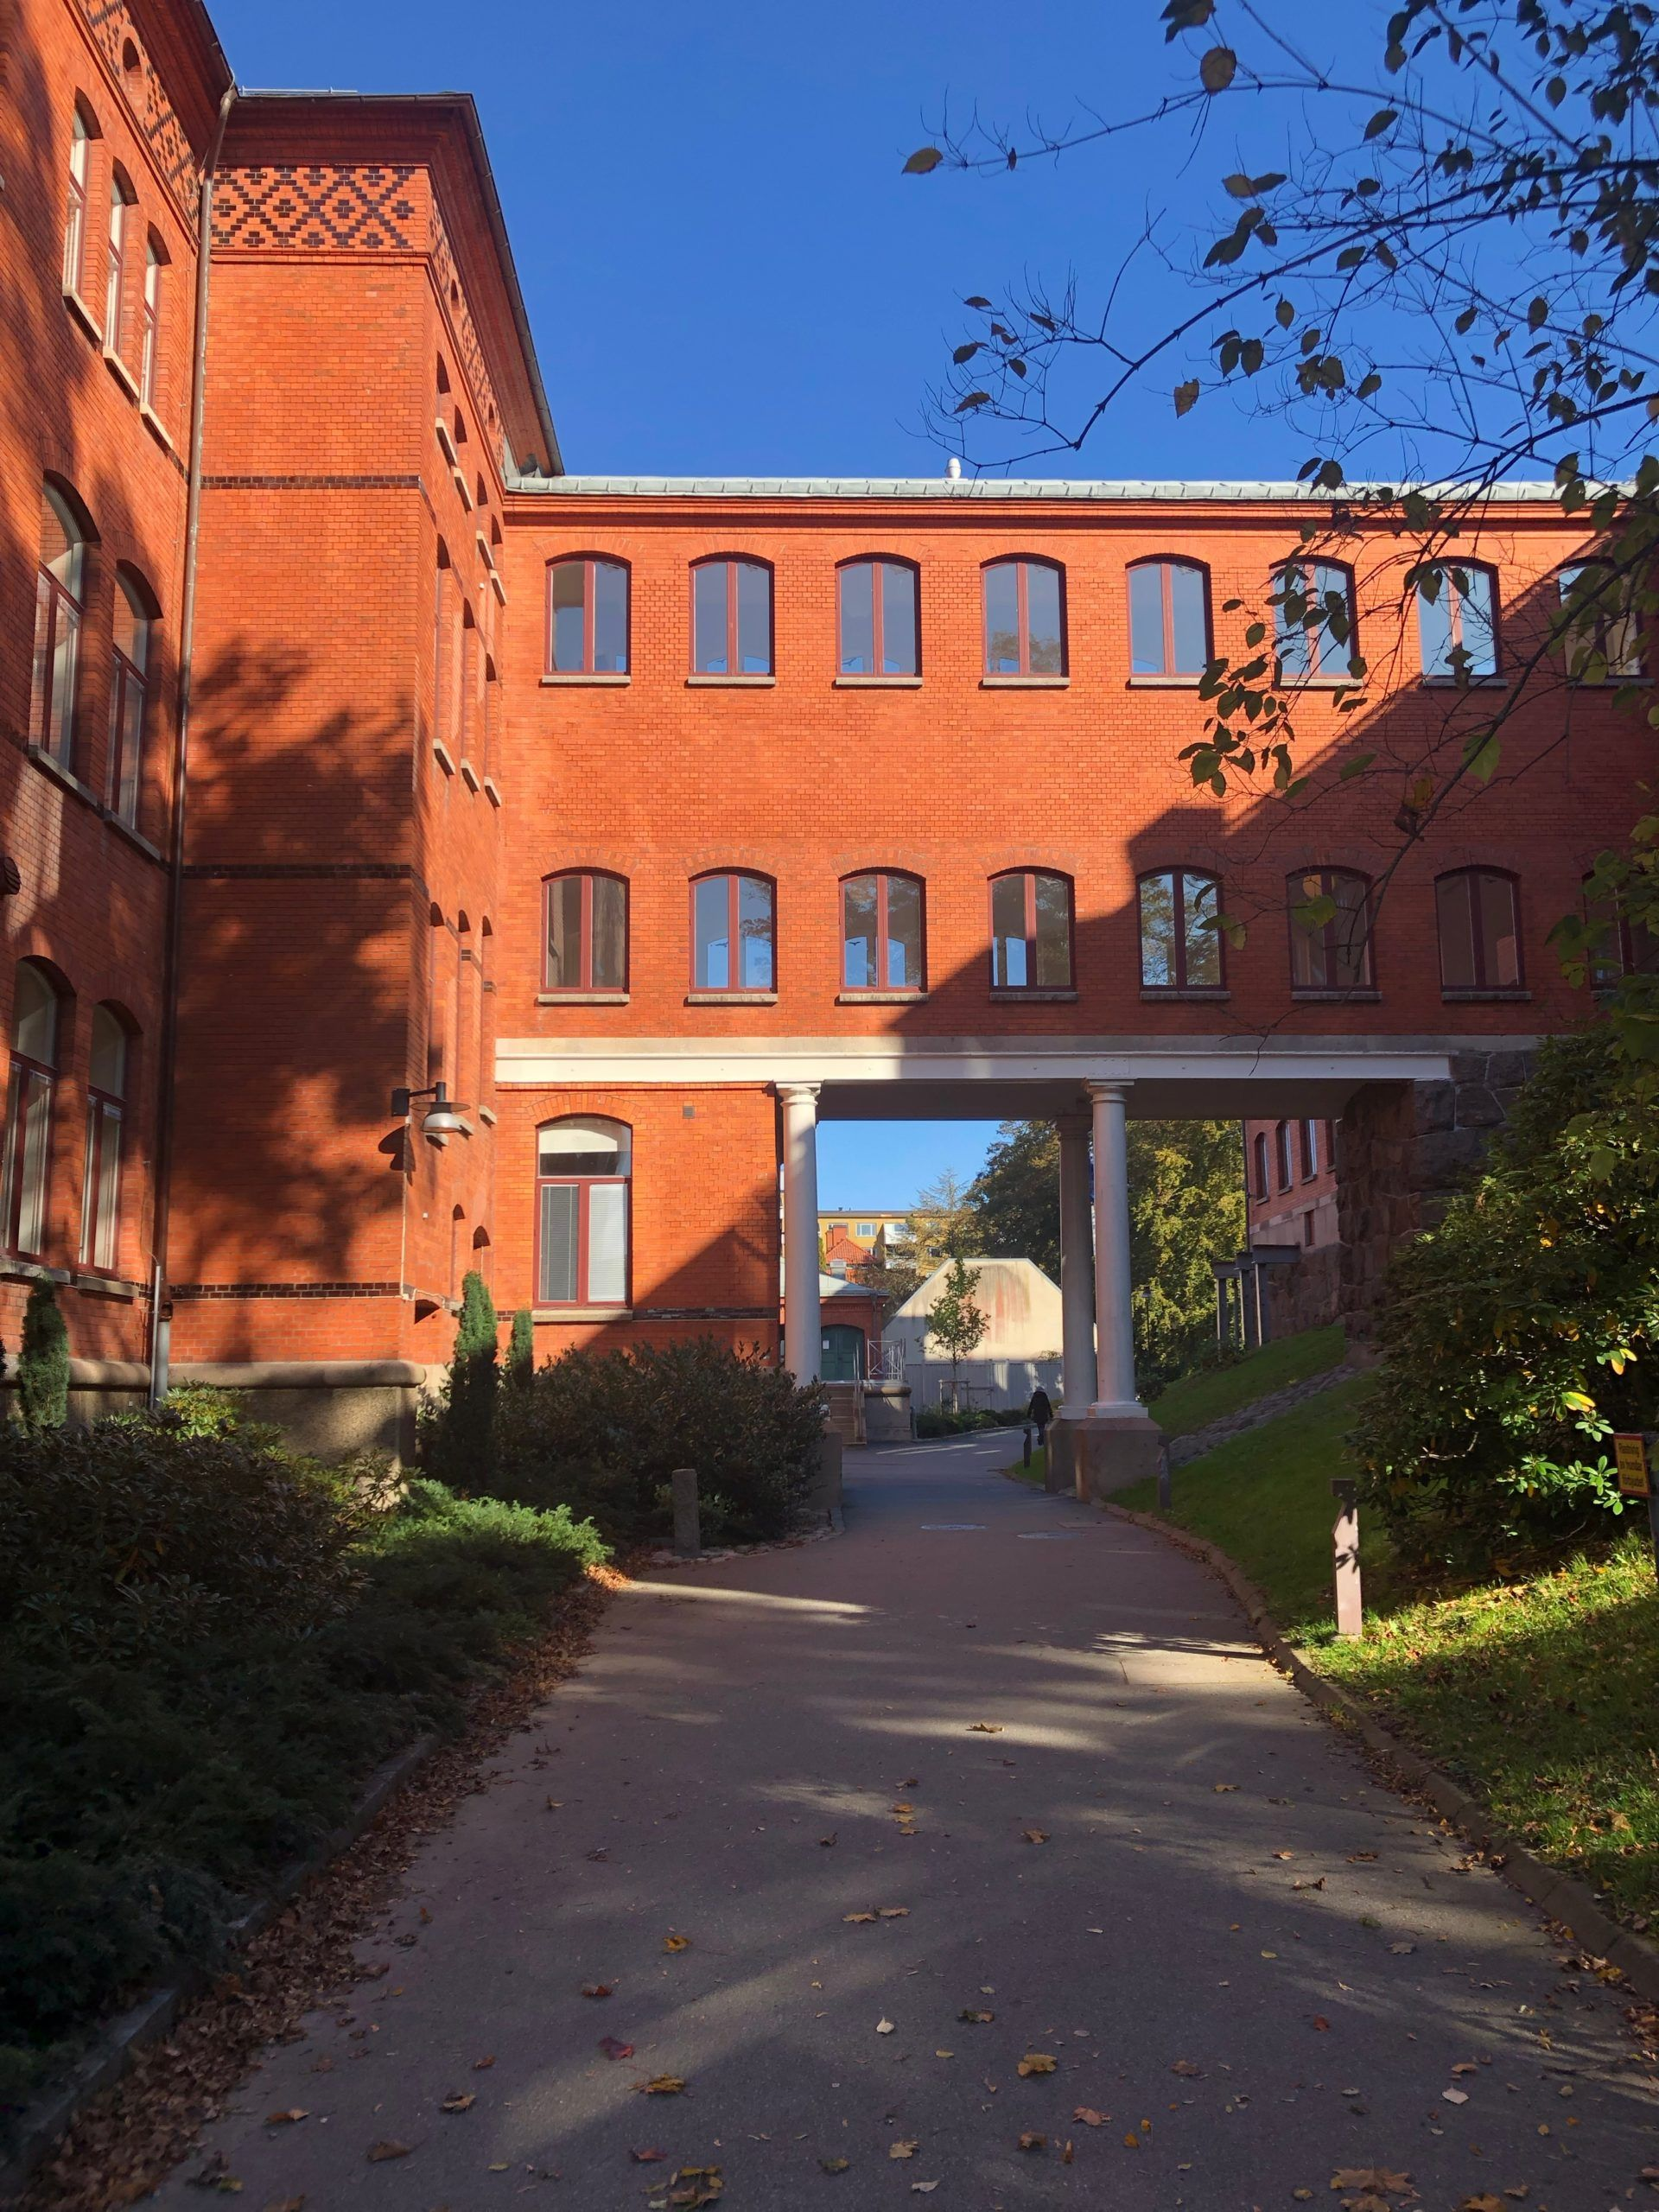 An orange brick building with many windows , the building of the School of Global Studies in Gothenburg